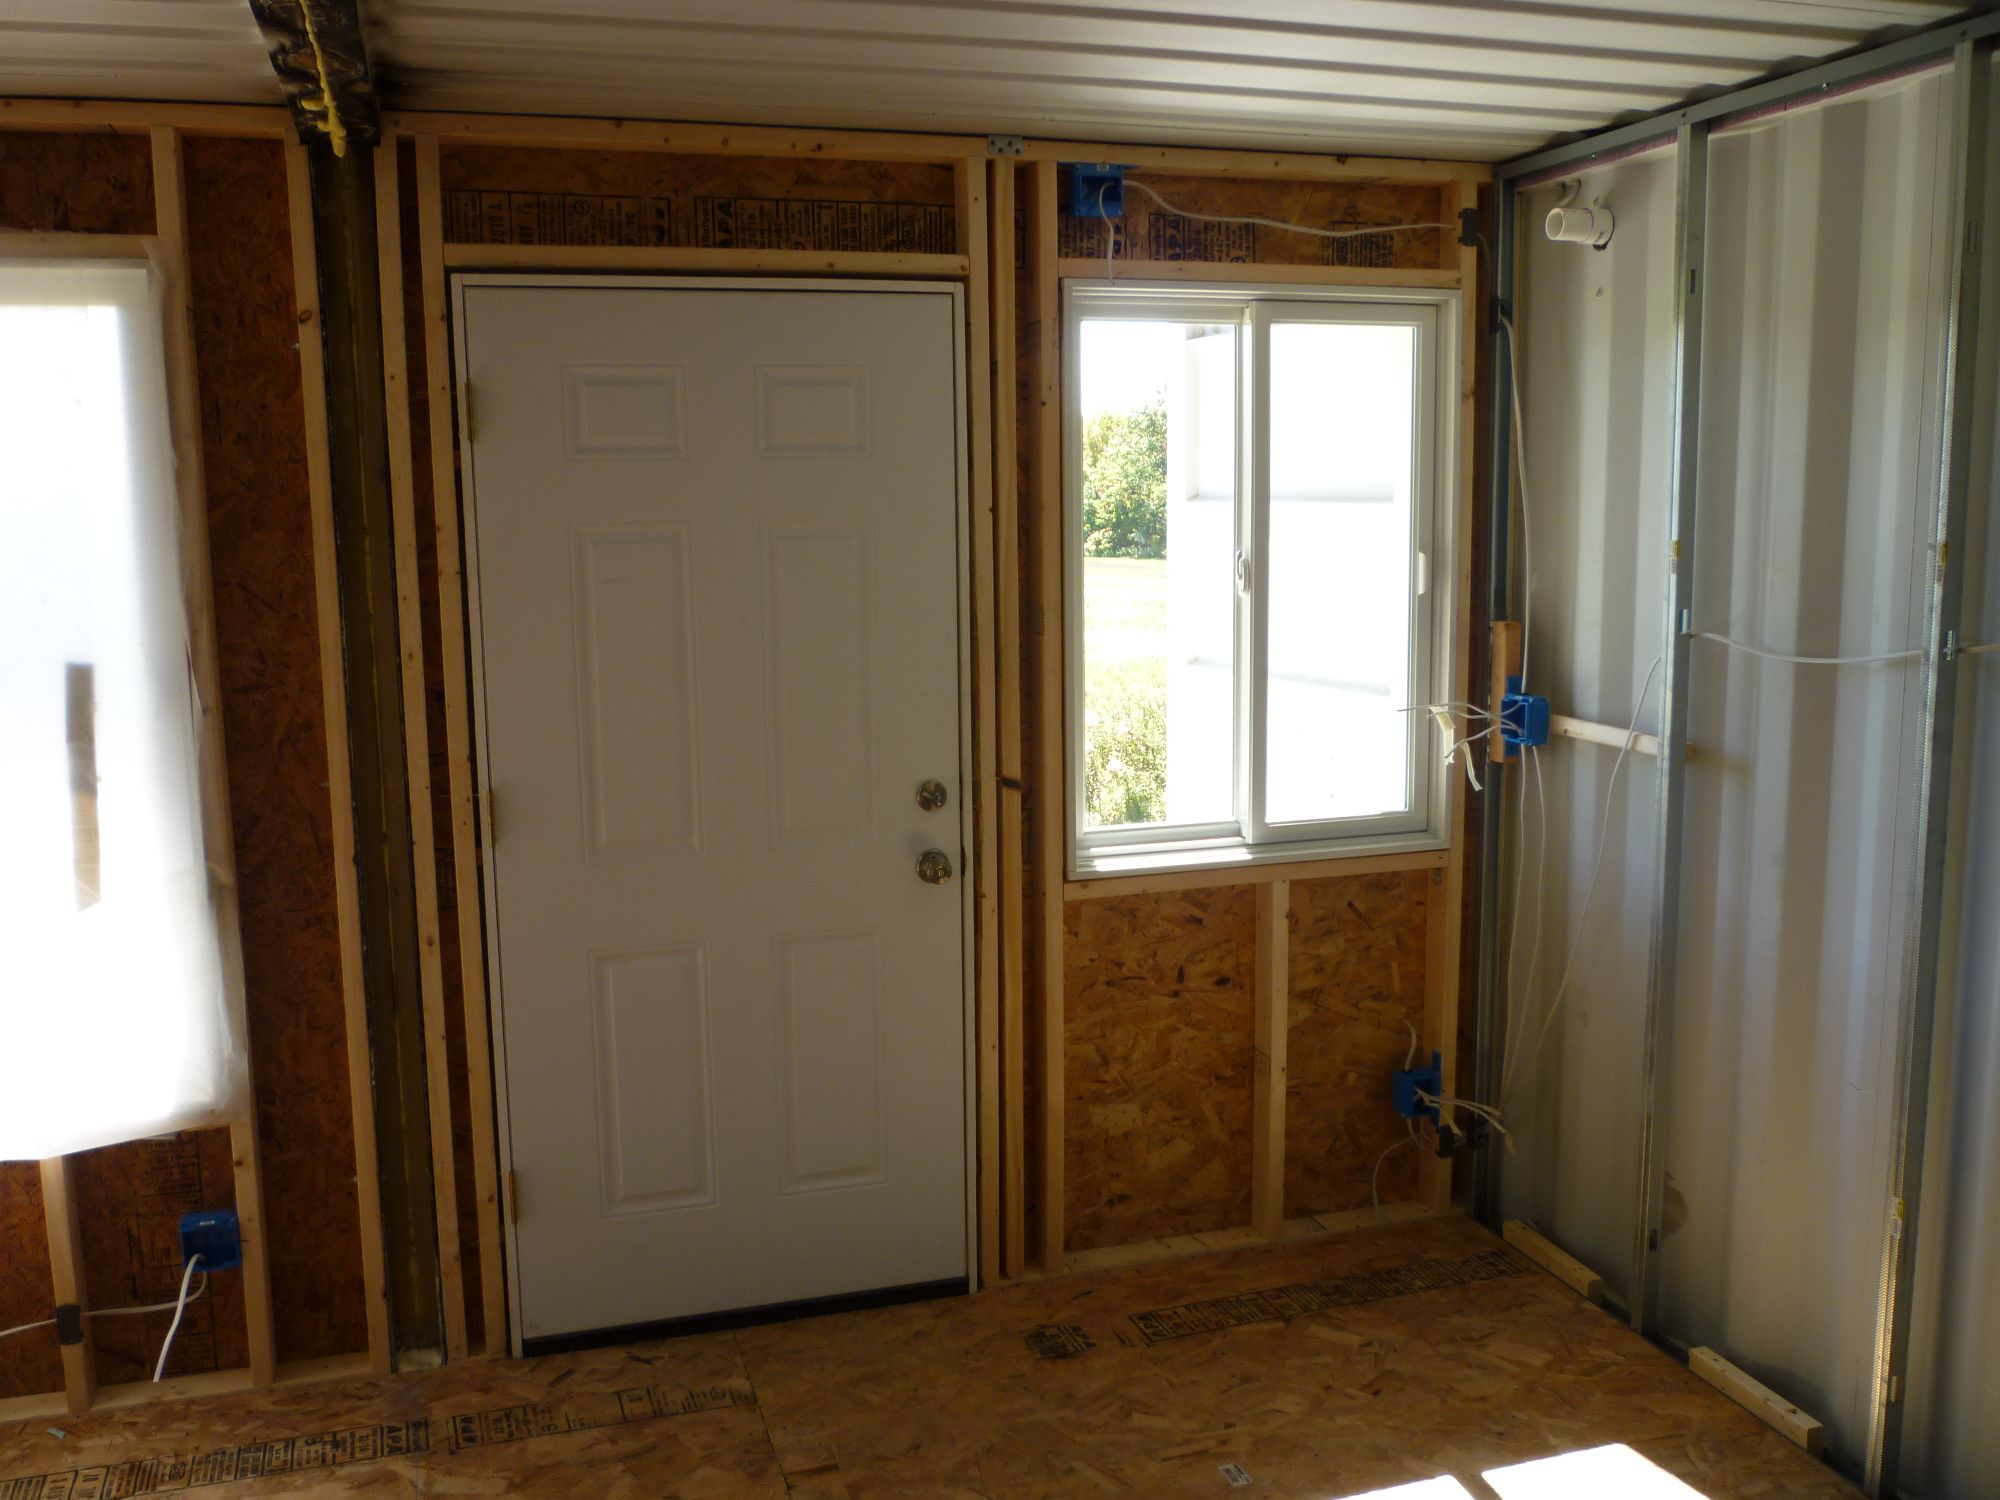 Electrical Wiring Tin Can Cabin Behind Walls